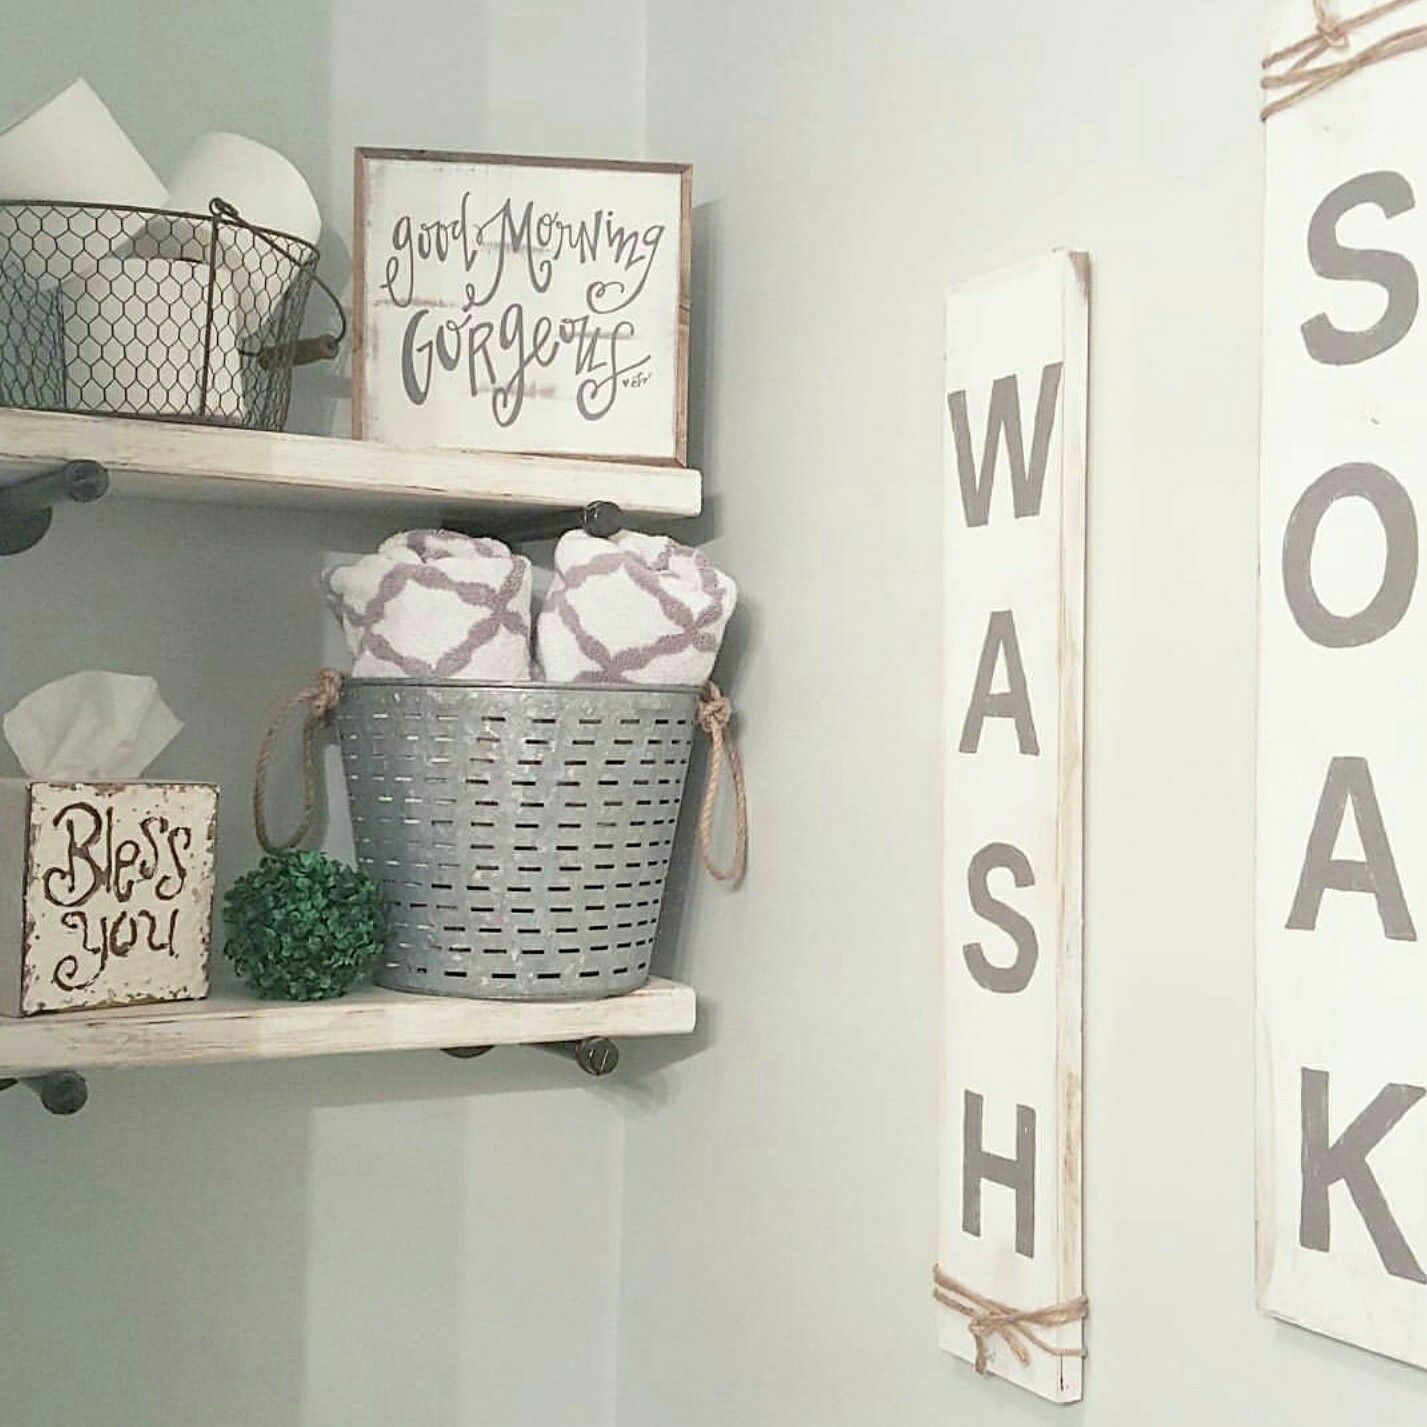 Love the good morning gorgeous sign and the wire basket with toilet paper